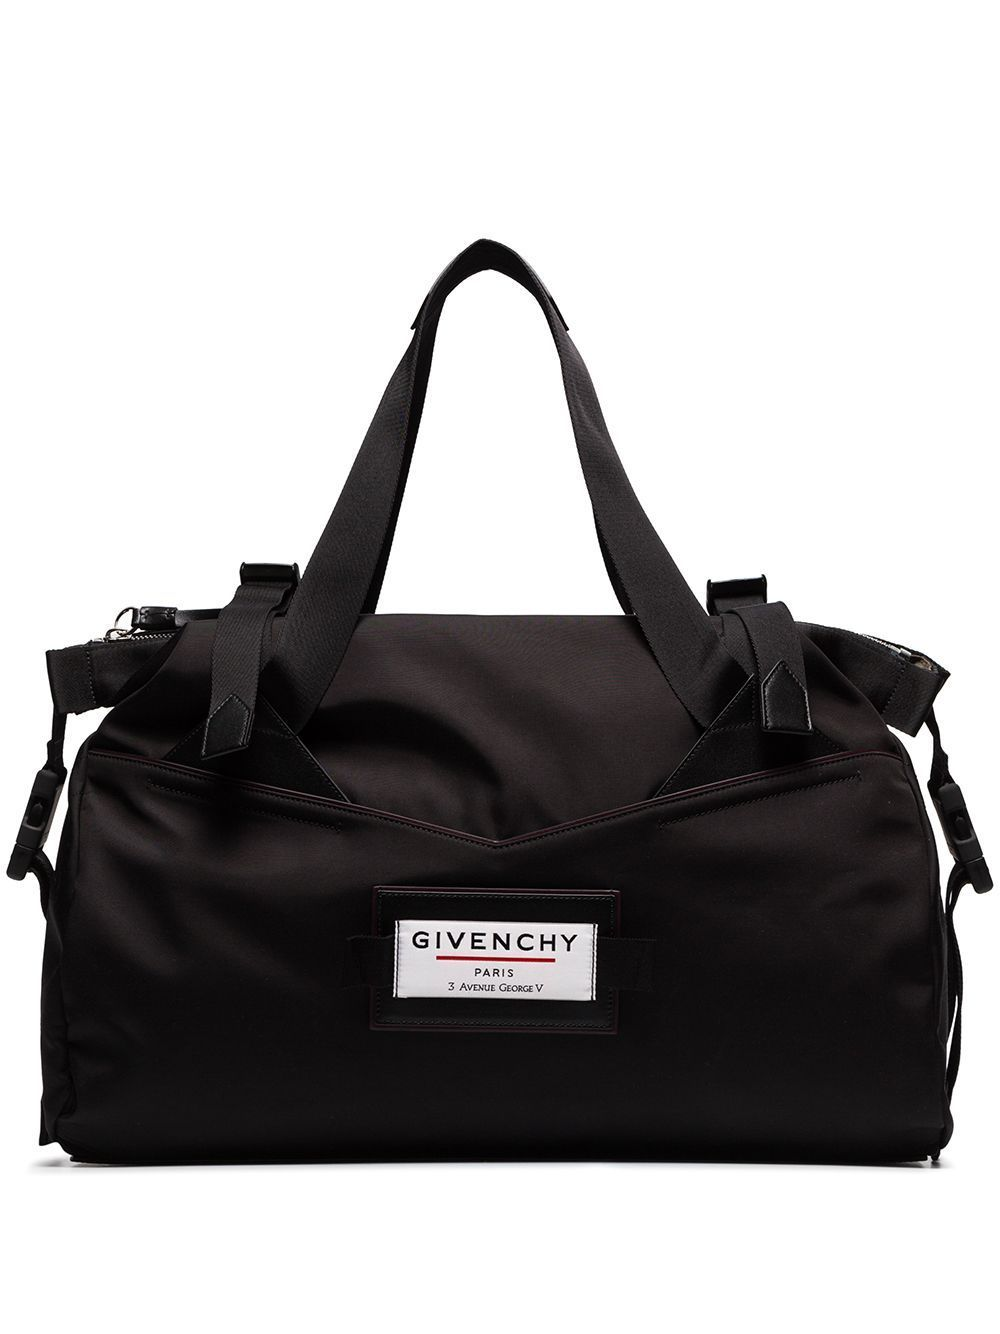 GIVENCHY◆Downtown ボストンバッグ (GIVENCHY/ボストンバッグ) 71570703